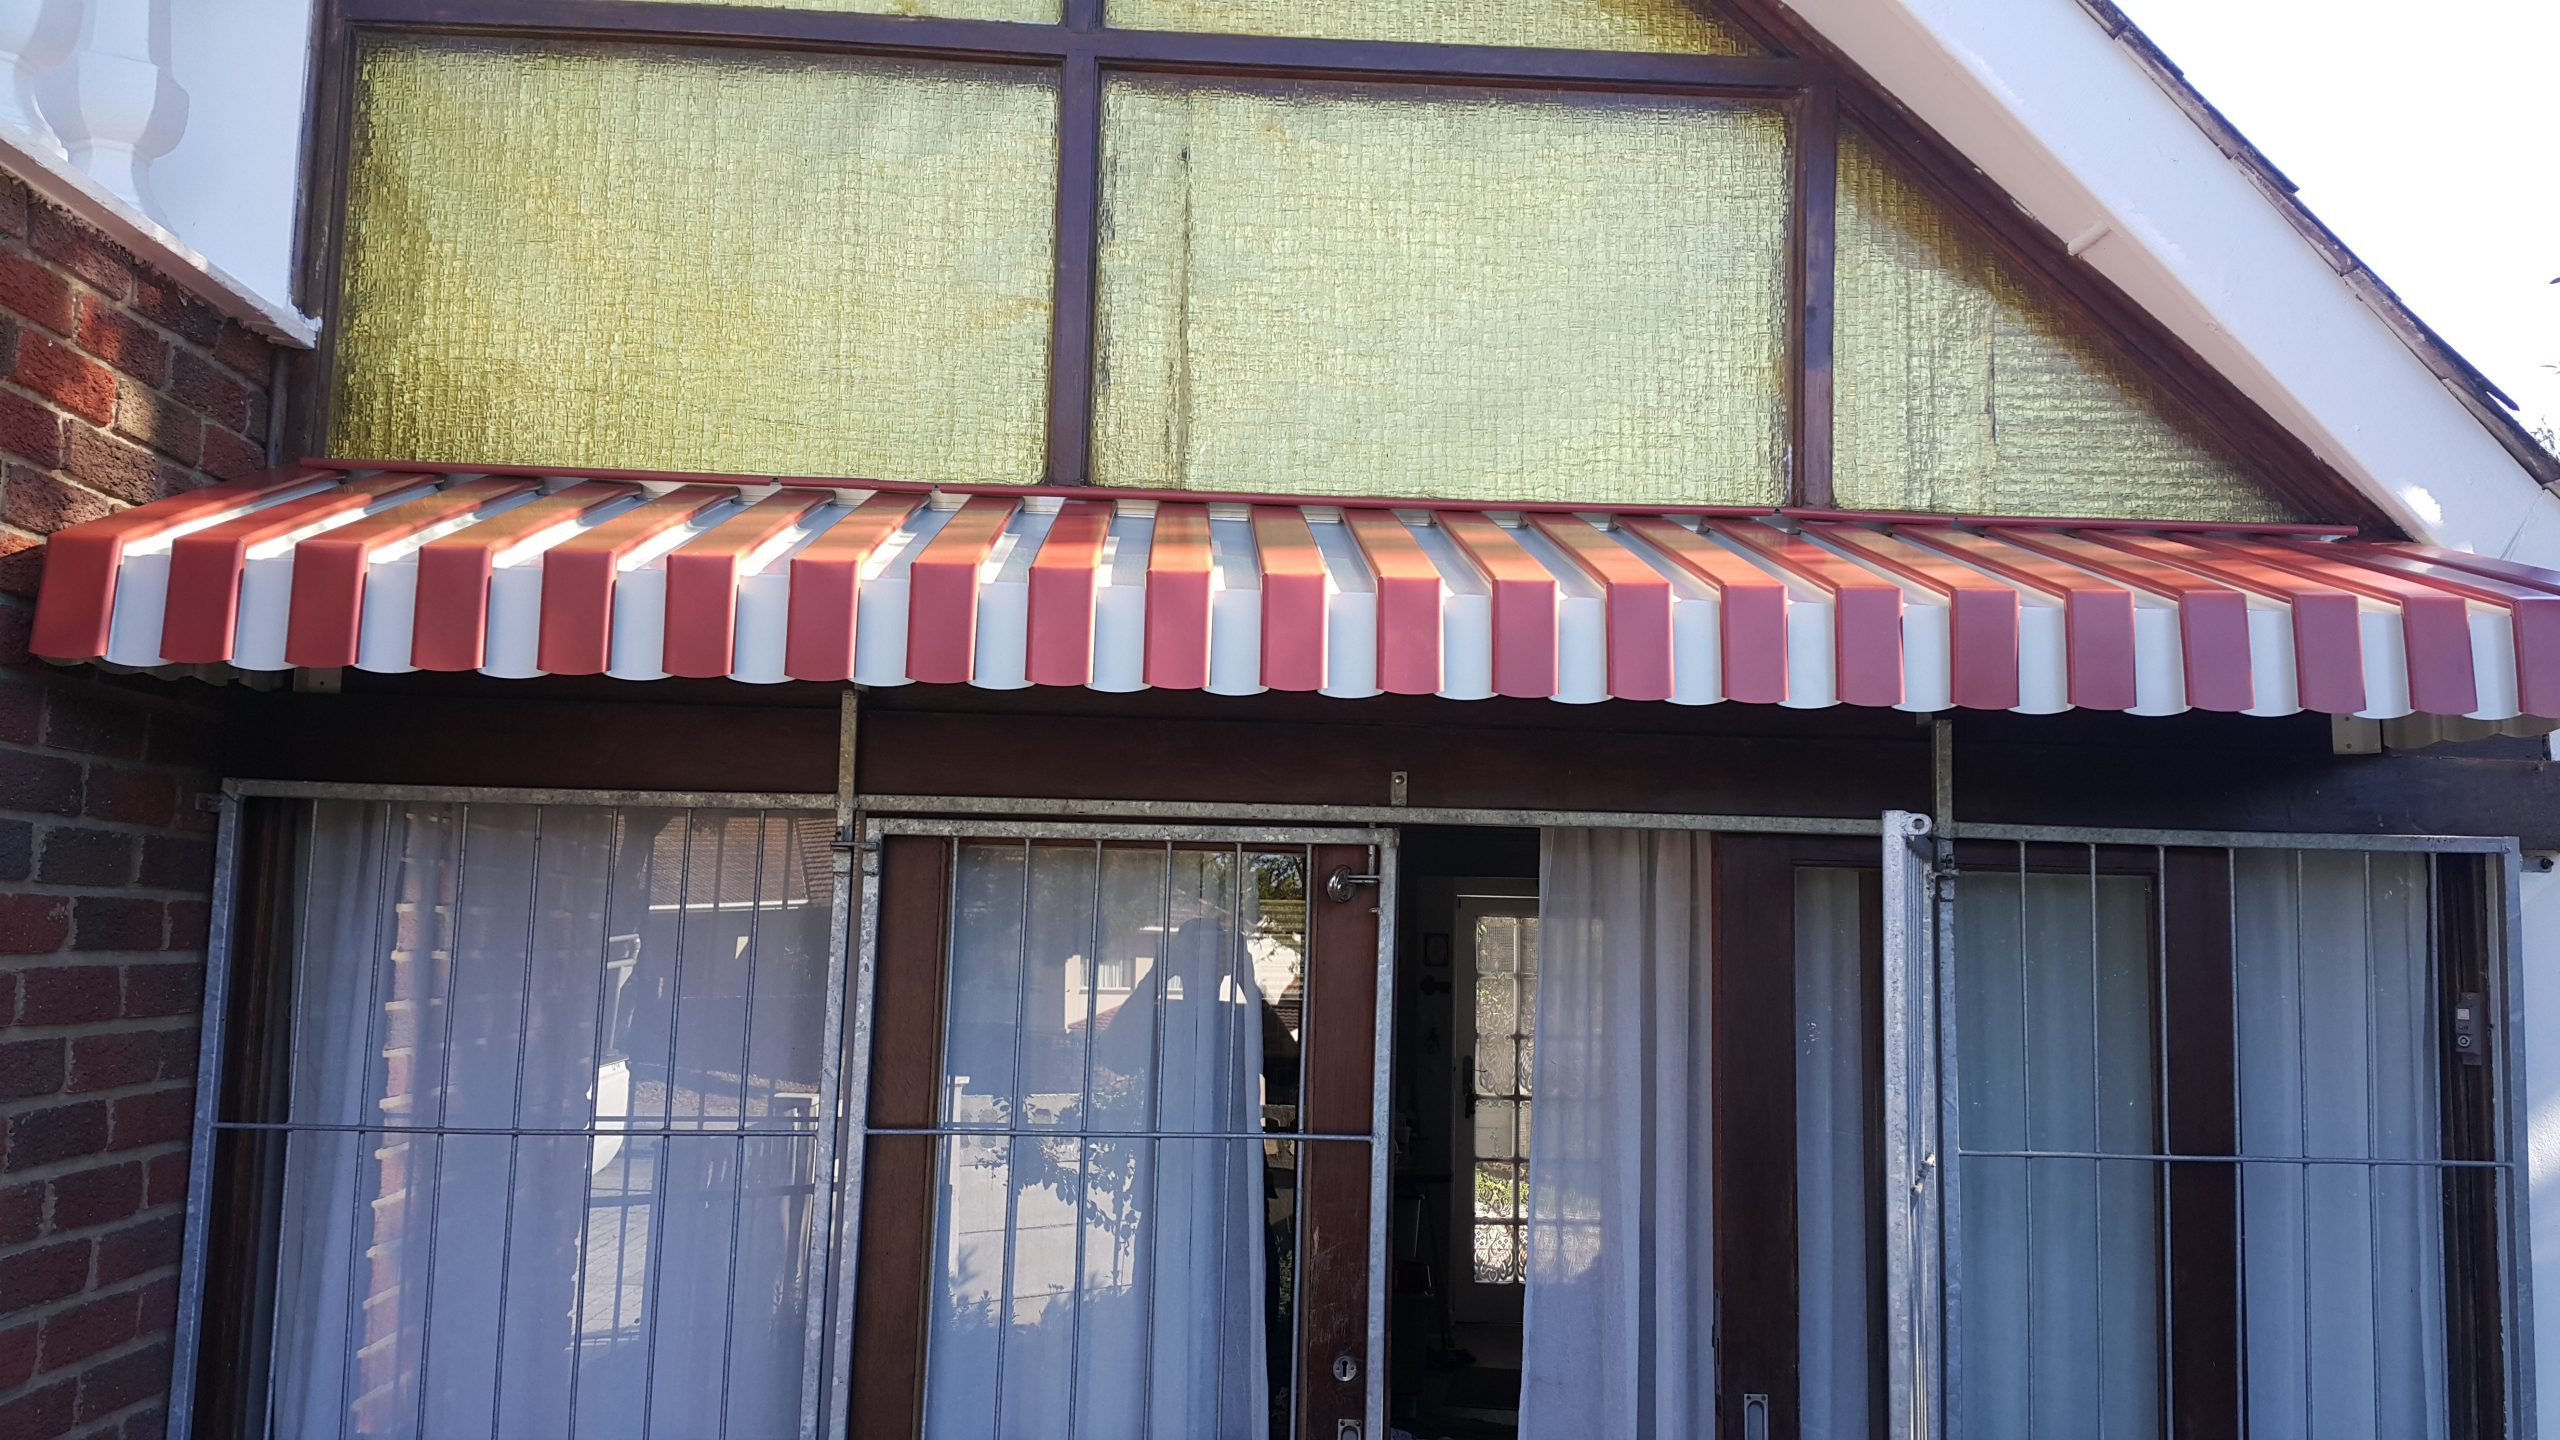 Patio Awning installation protects the outdoor patio